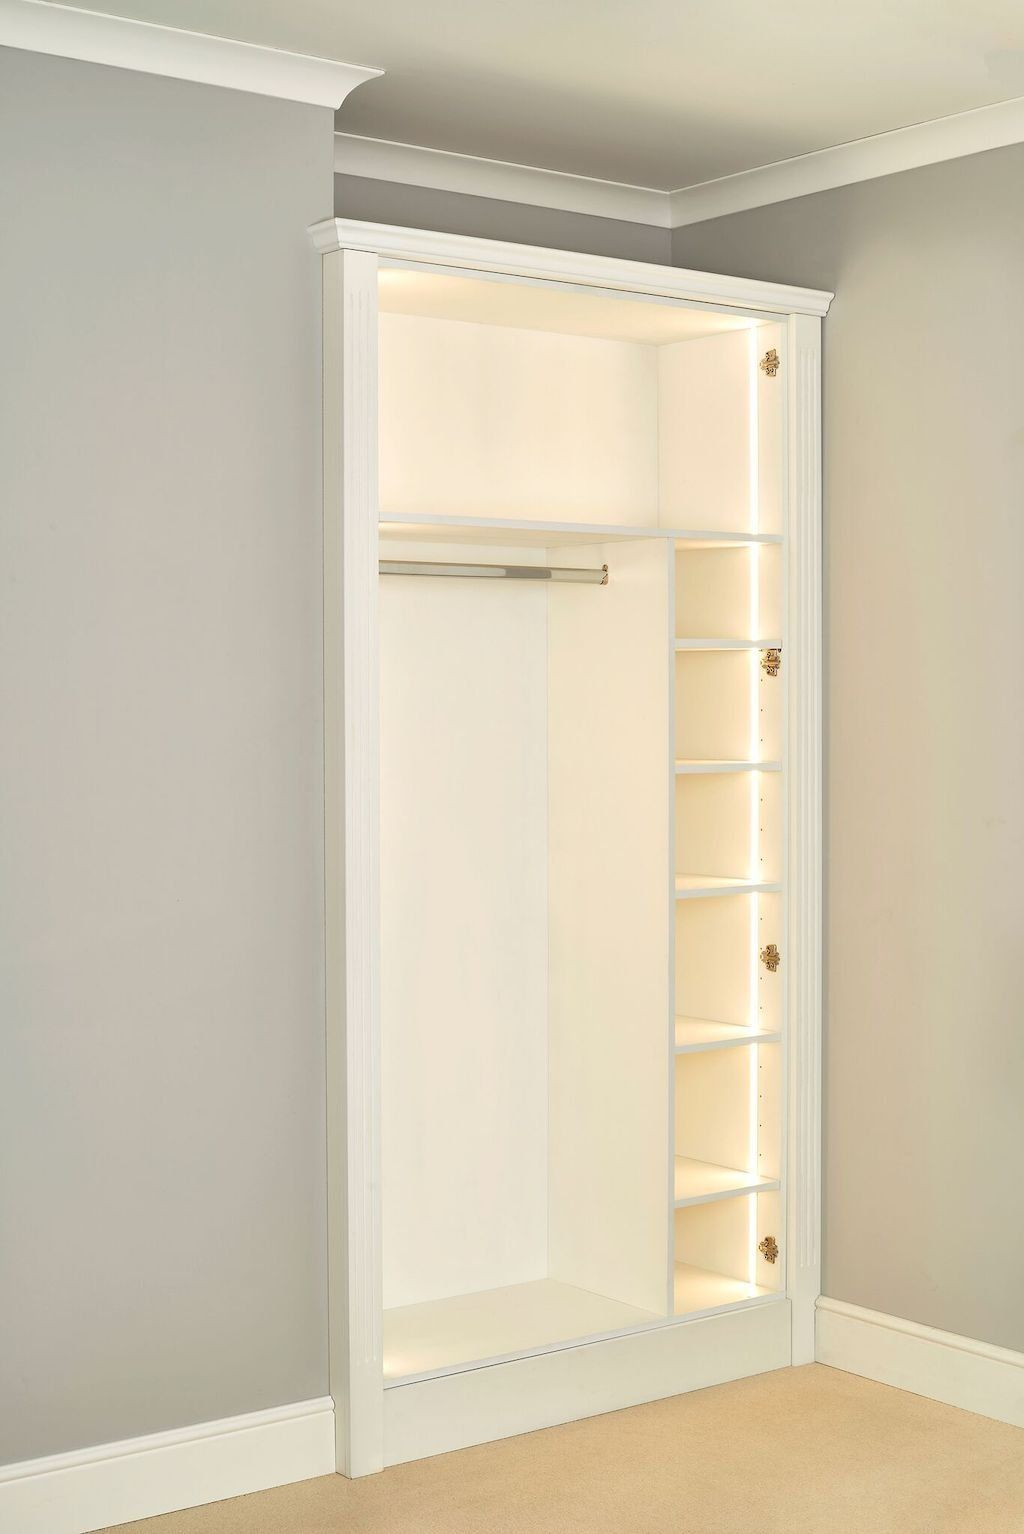 Diy Fitted Wardrobes Save House And Add Type Diy Fitted